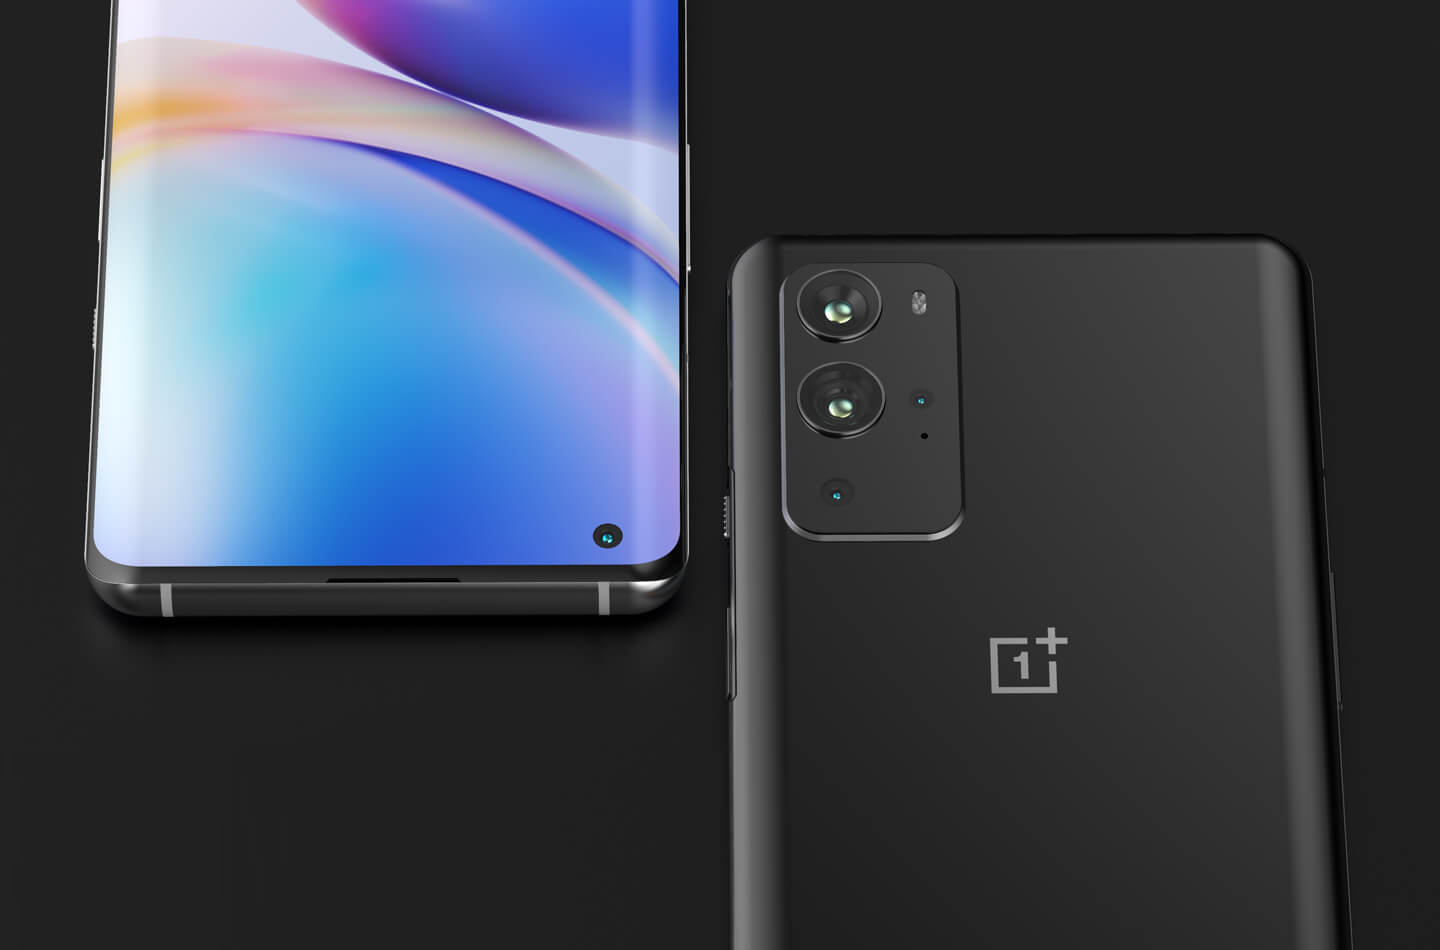 OnePlus 9 leak reveals killer camera upgrades to fight Samsung Galaxy S21